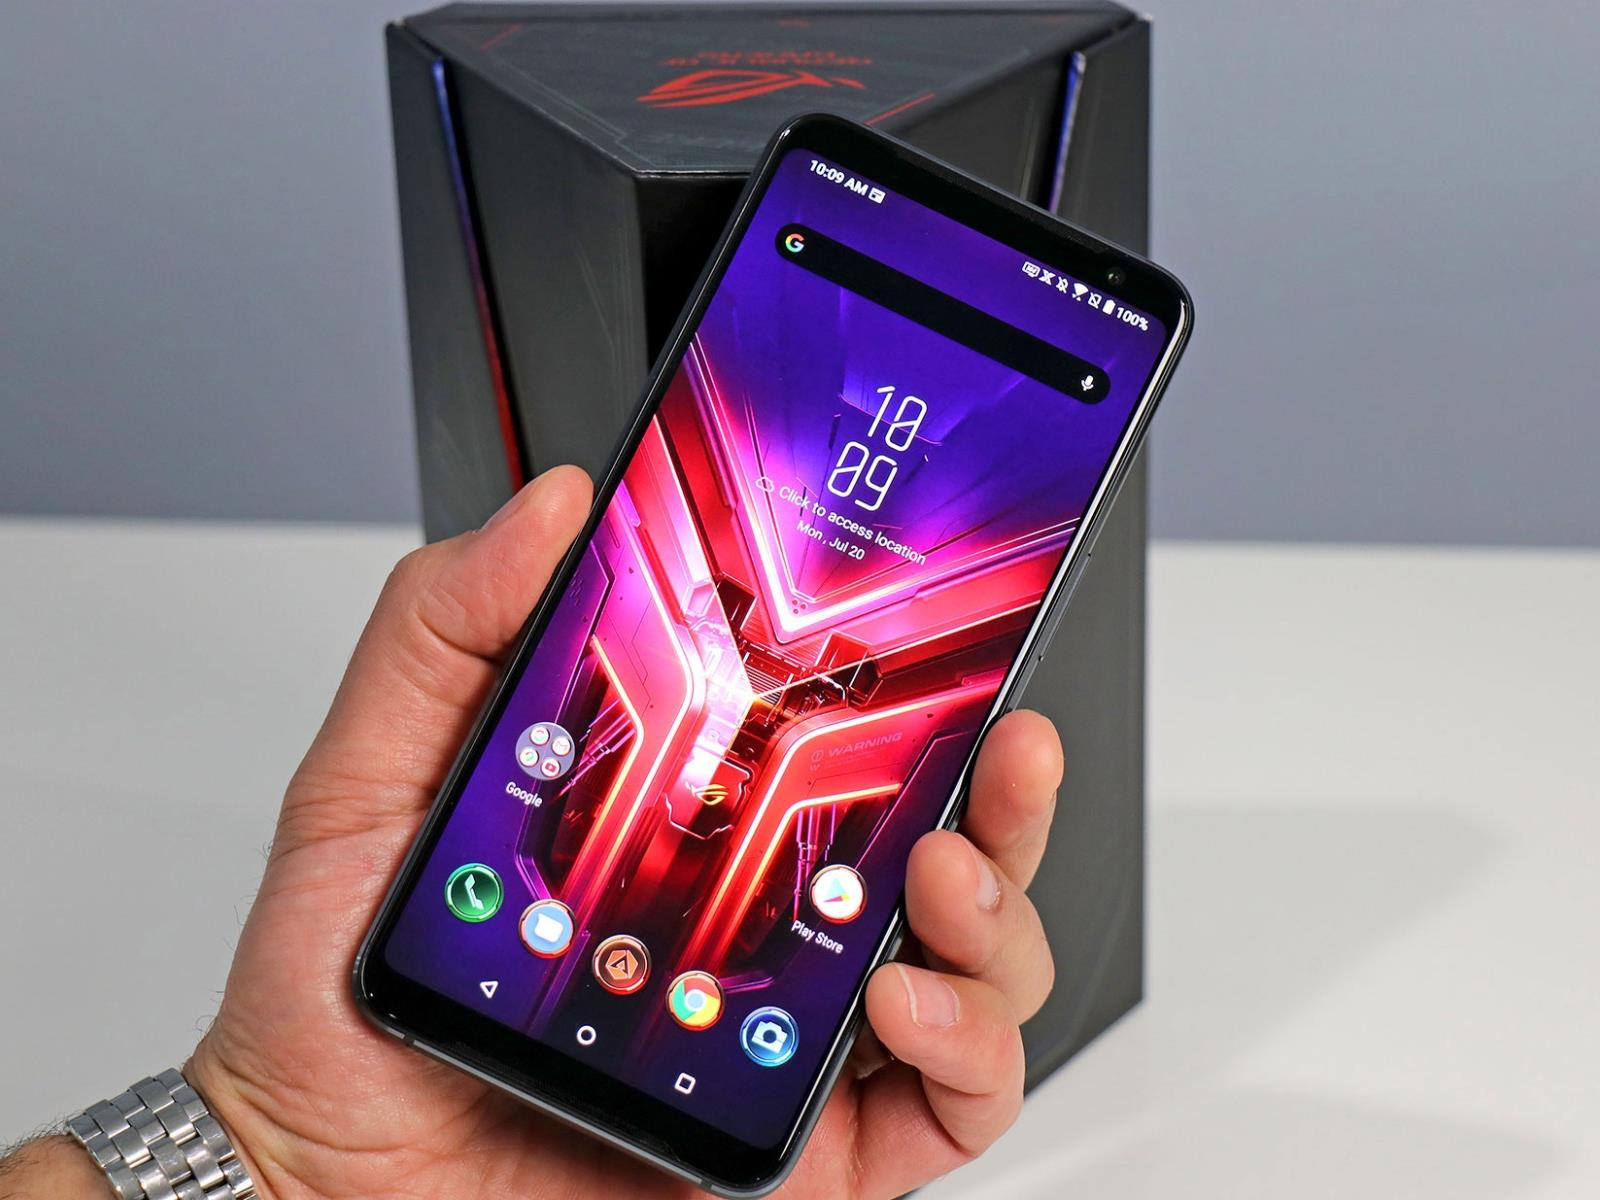 4x3 1600x1200 highres Asus ROG Phone 3 front in hand